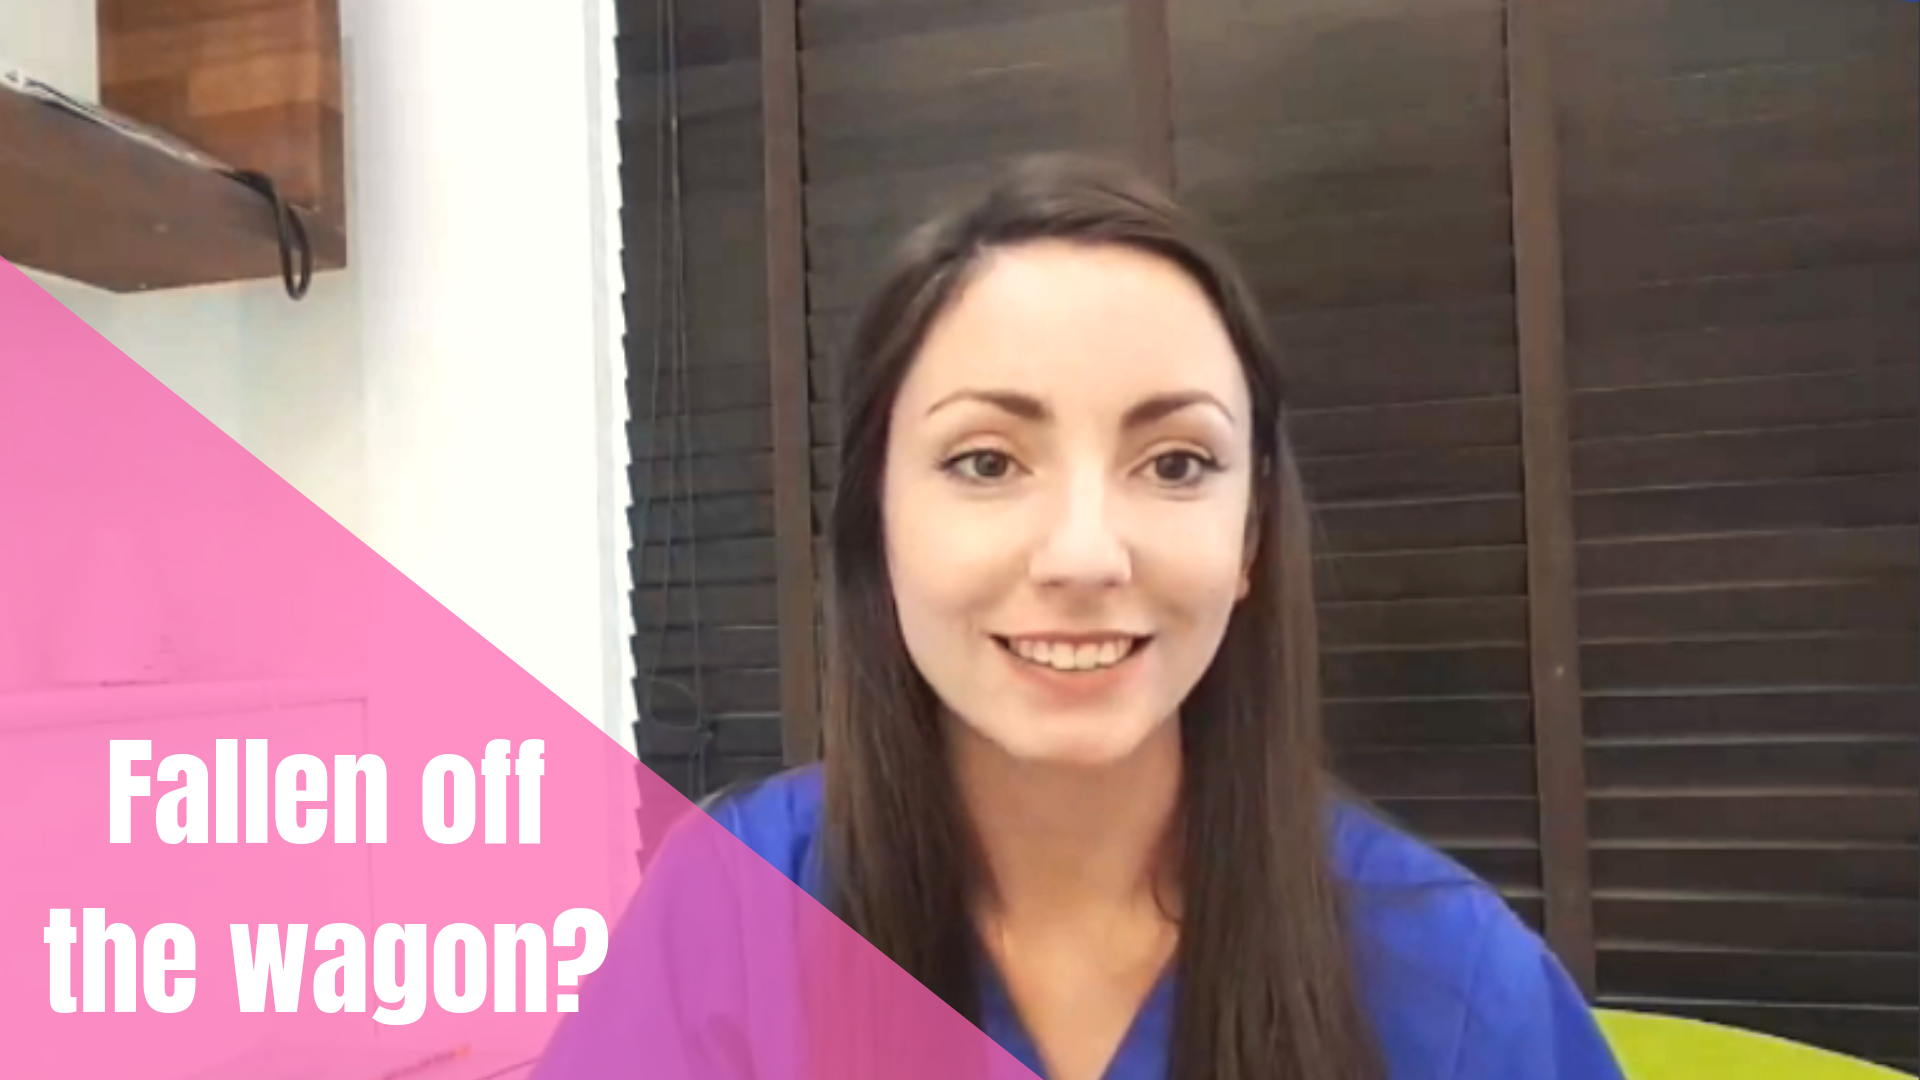 What To Do When You Fall Off The Wagon [Video]